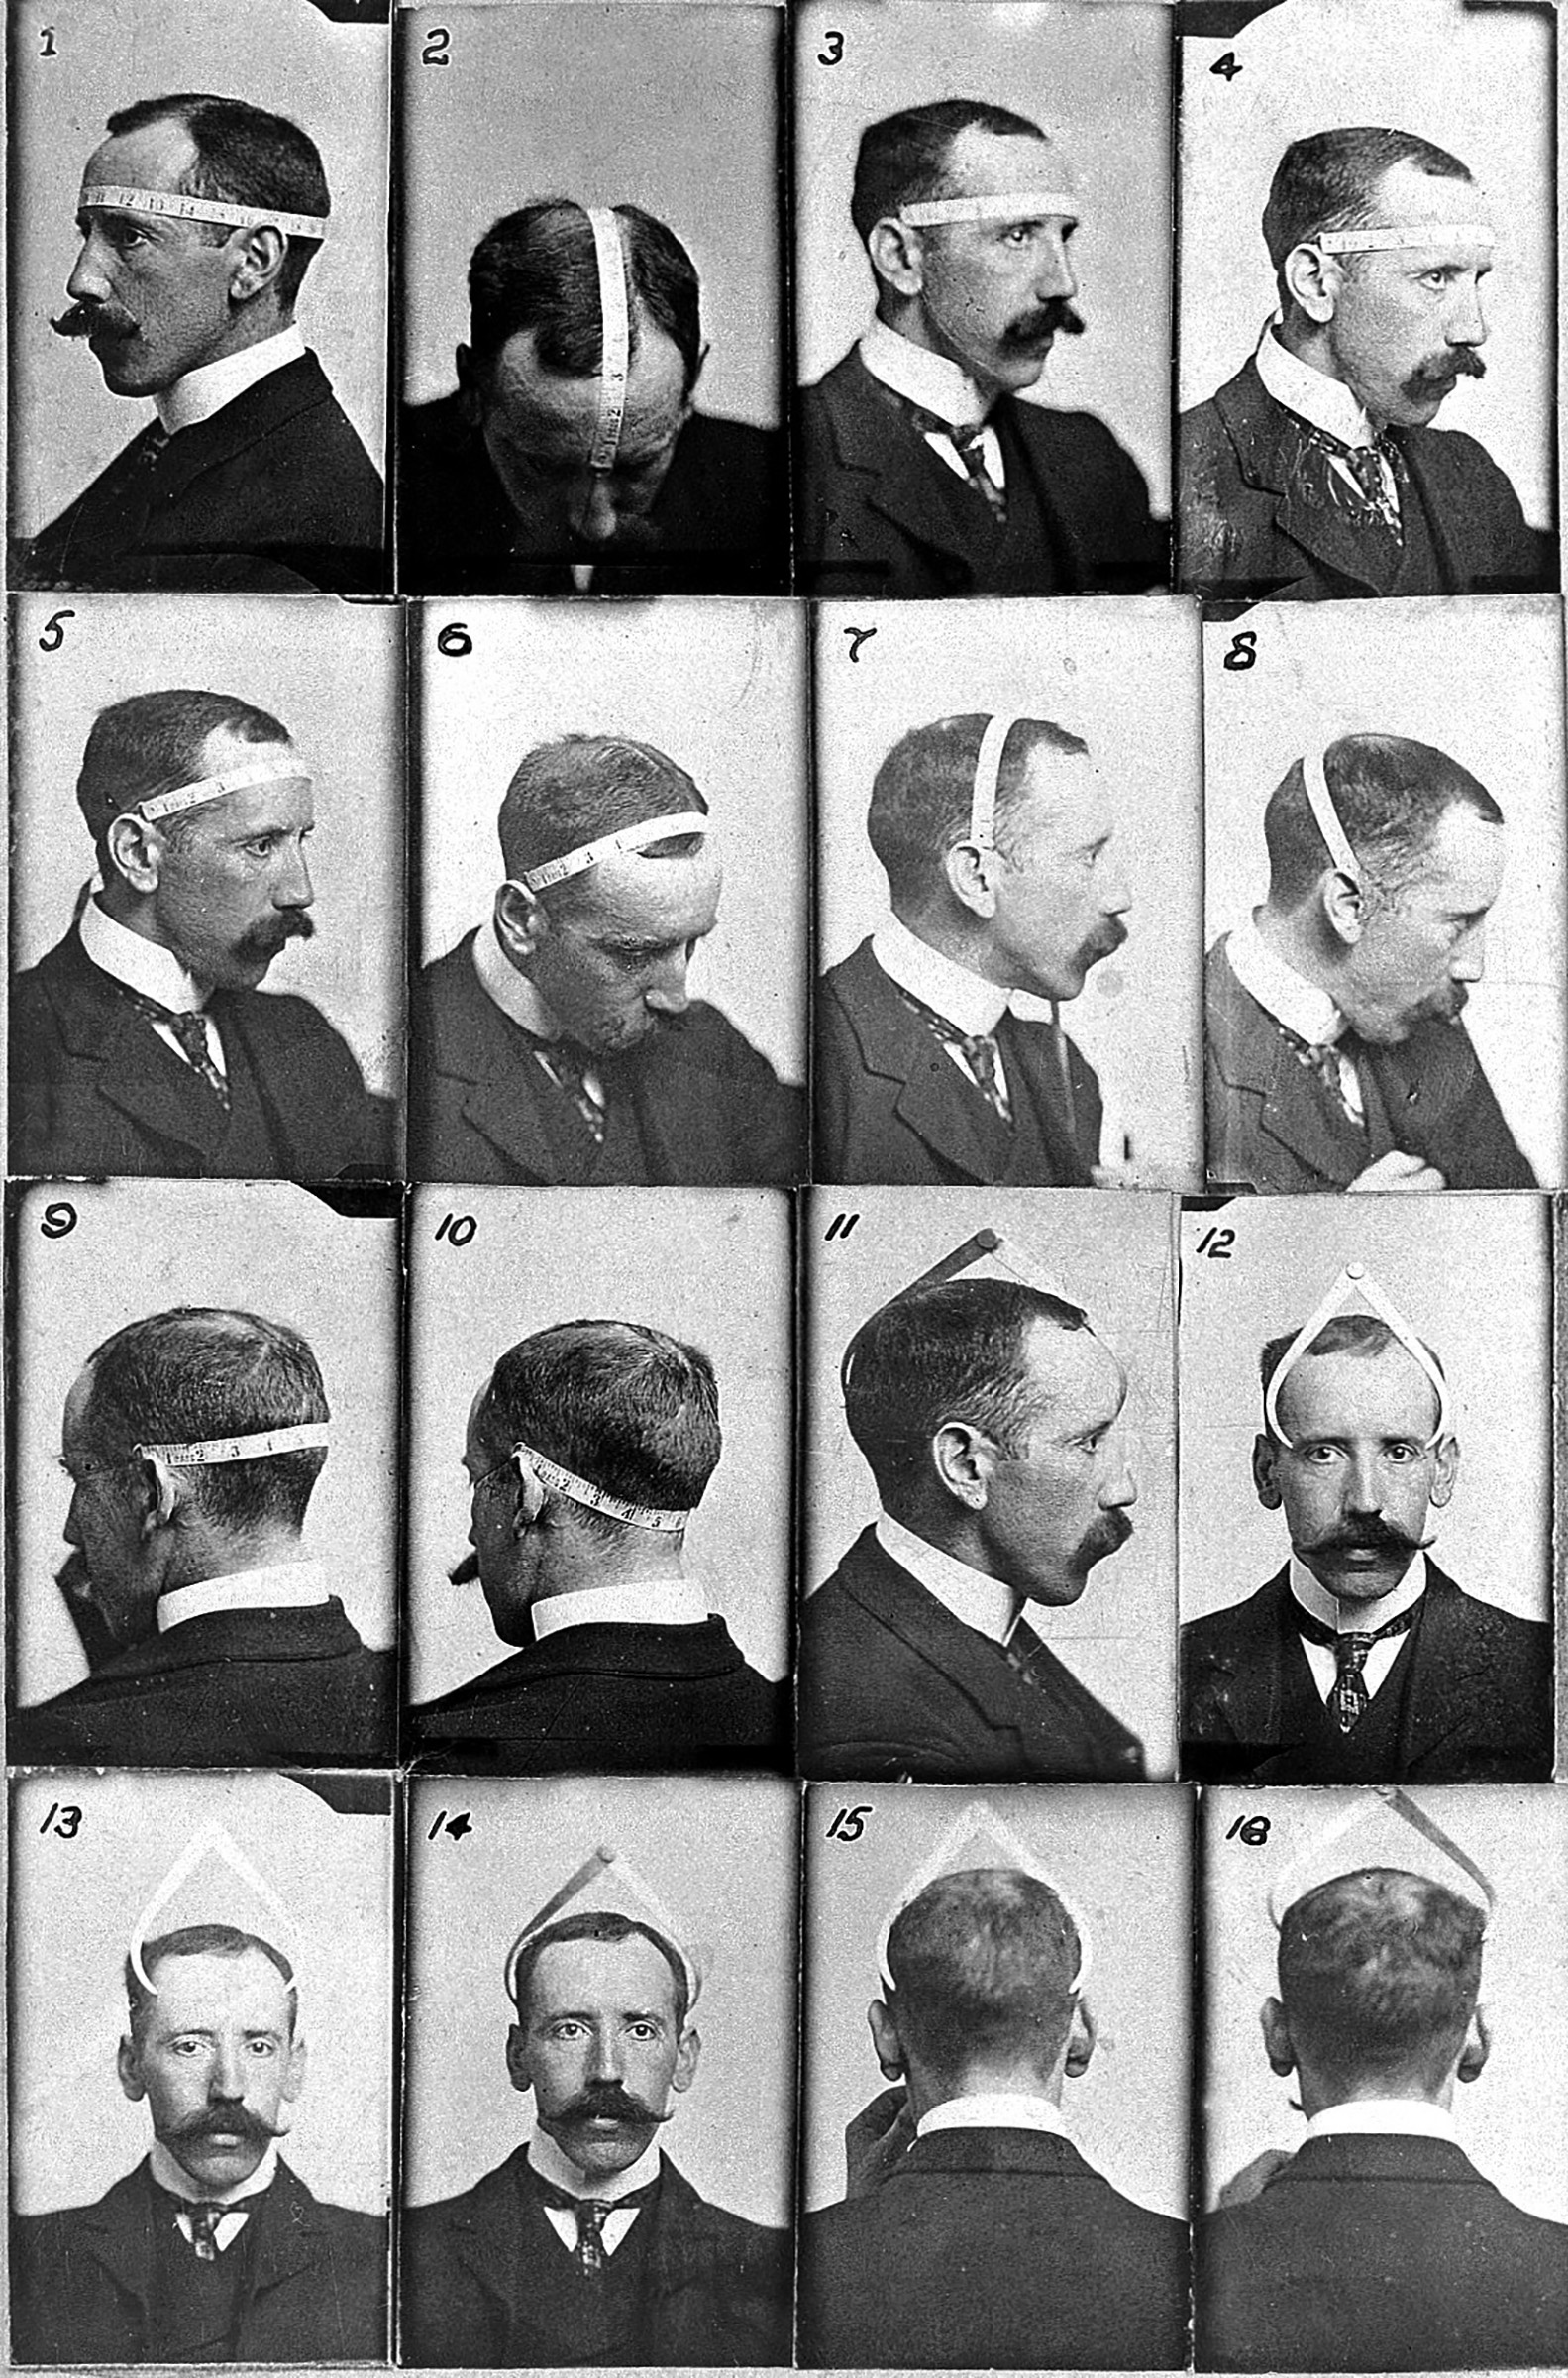 The Austrian-born Bernard Hollander favored a quantitative approach to phrenological diagnosis, and is shown here methodically measuring his own skull in 1902. His meticulous view of the critical role of cranial measurement mirrored Galton's in its obsessive assessment of statistical averages.